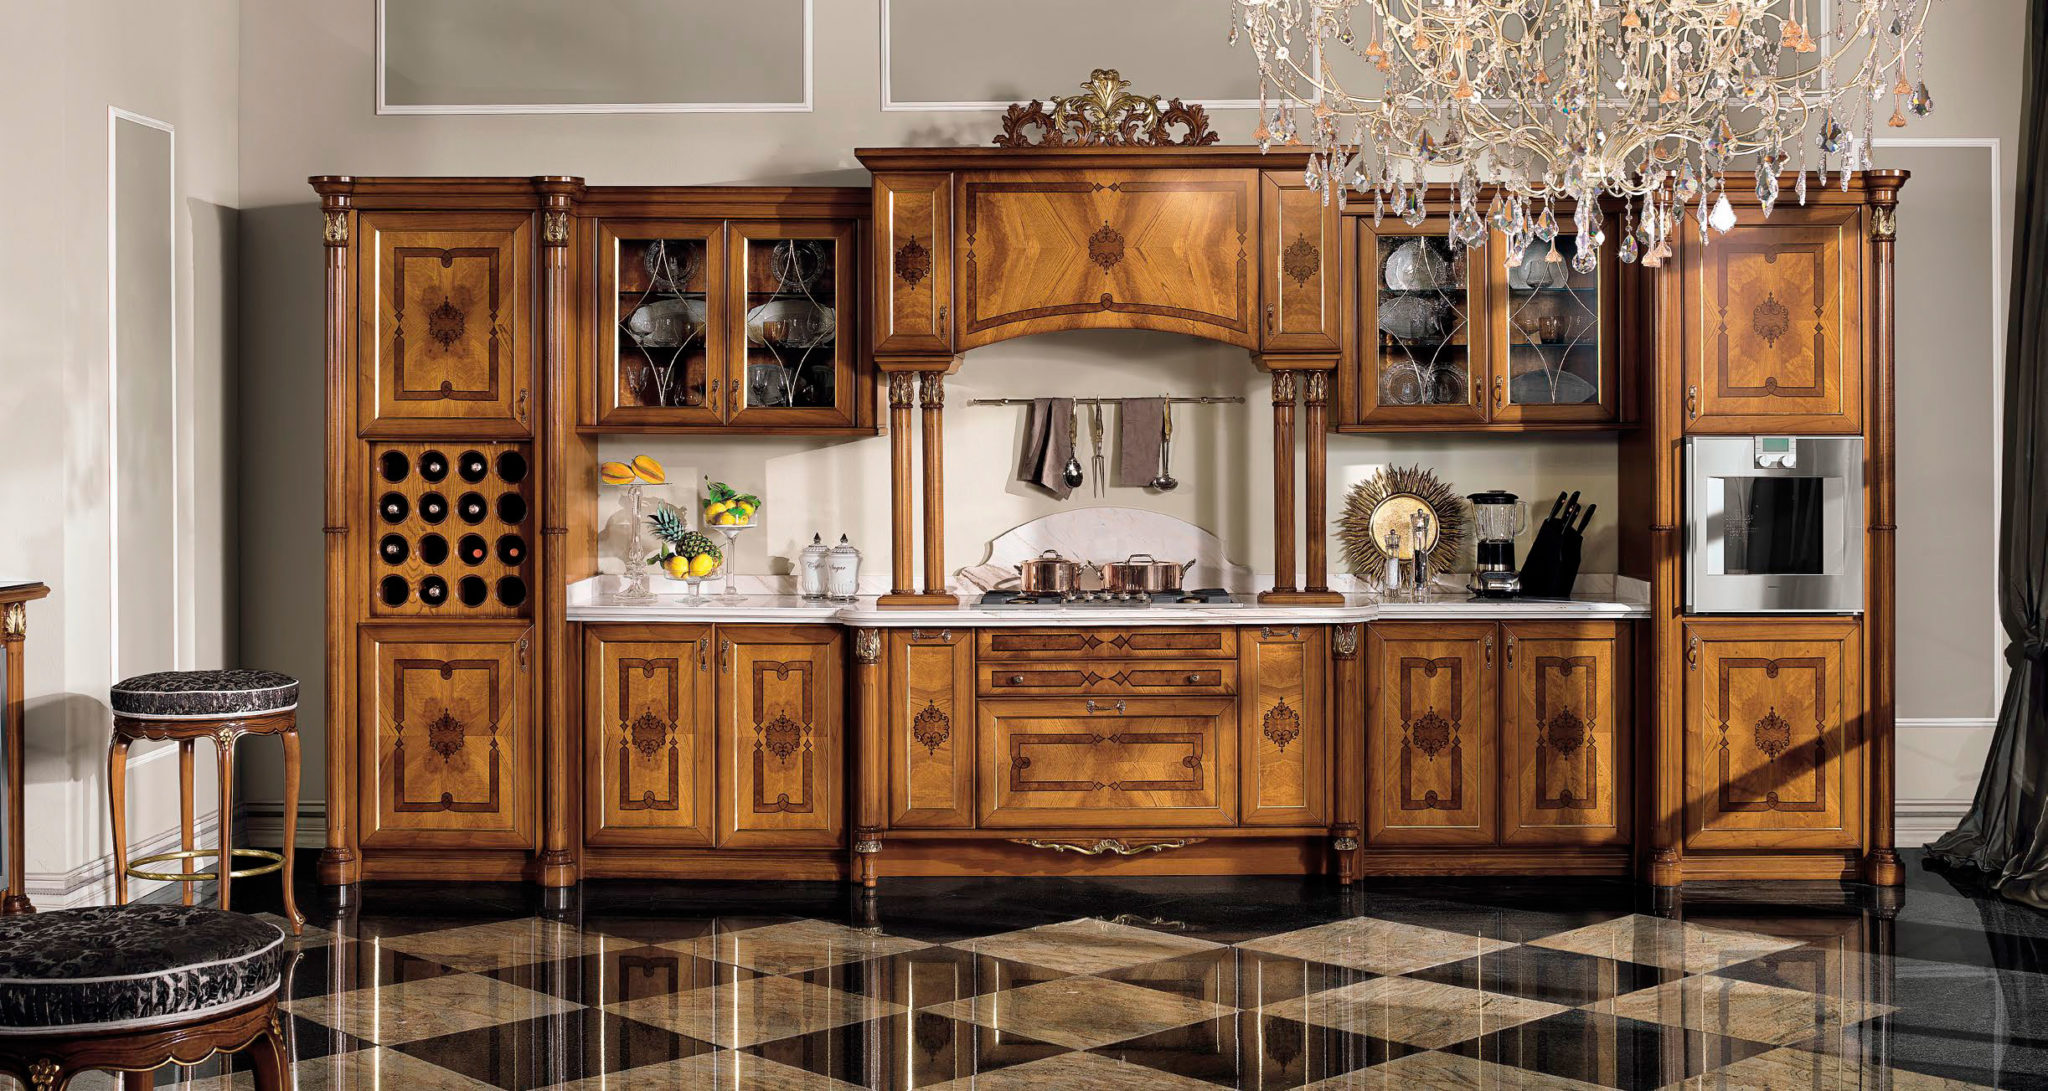 american classics kitchen cabinets kohler barossa faucet classic kitchens luxury homes design